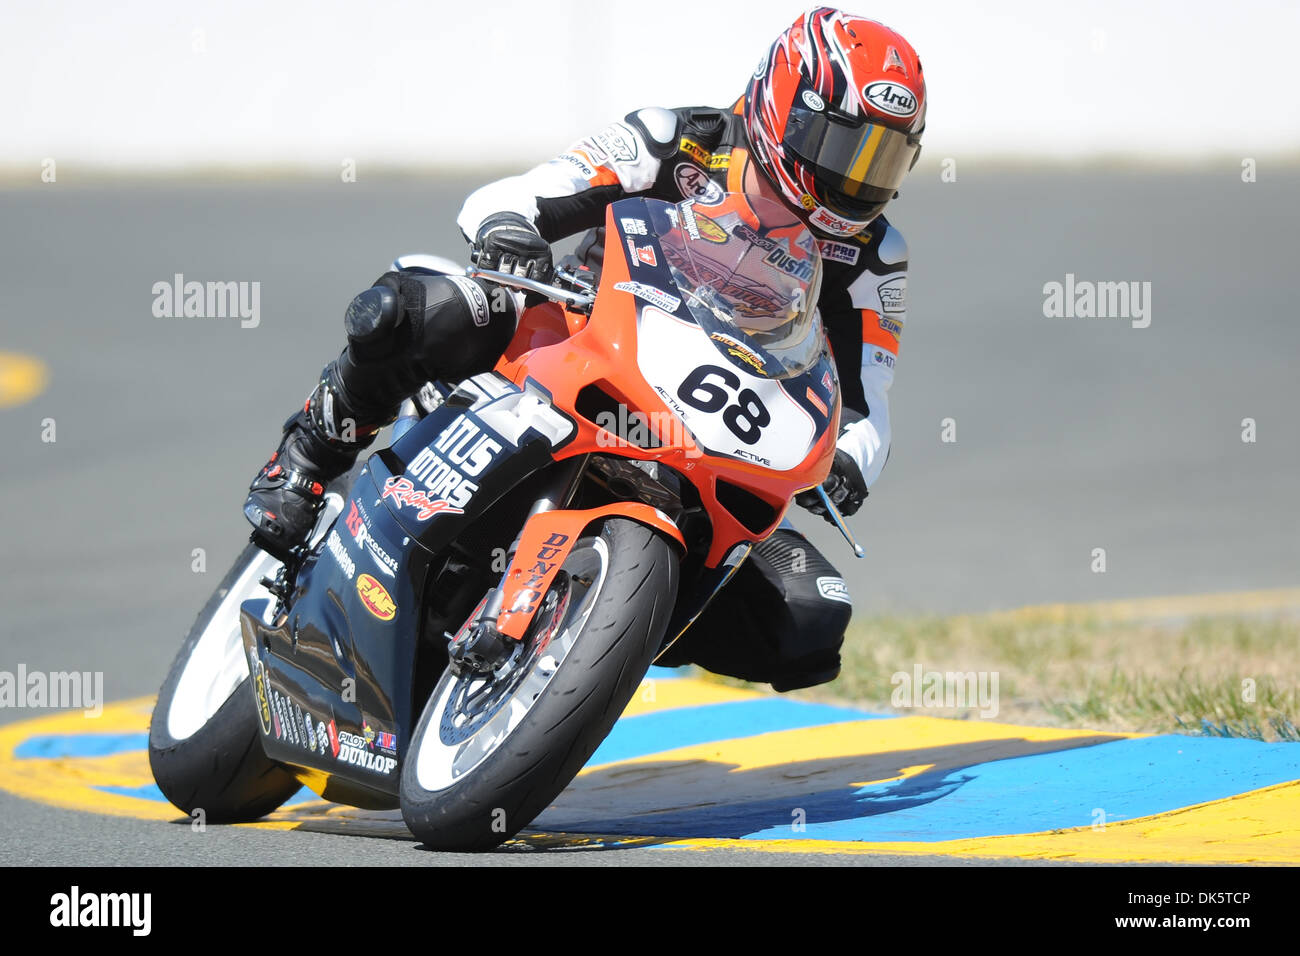 May 13, 2011 - Sonoma, California, United States of America - Dustin Dominguez (68) rides a Ducati 848 during AMA Pro SuperSport practice at the West Coast Moto Jam at Infineon Raceway. (Credit Image: © Matt Cohen/Southcreek Global/ZUMAPRESS.com) - Stock Image